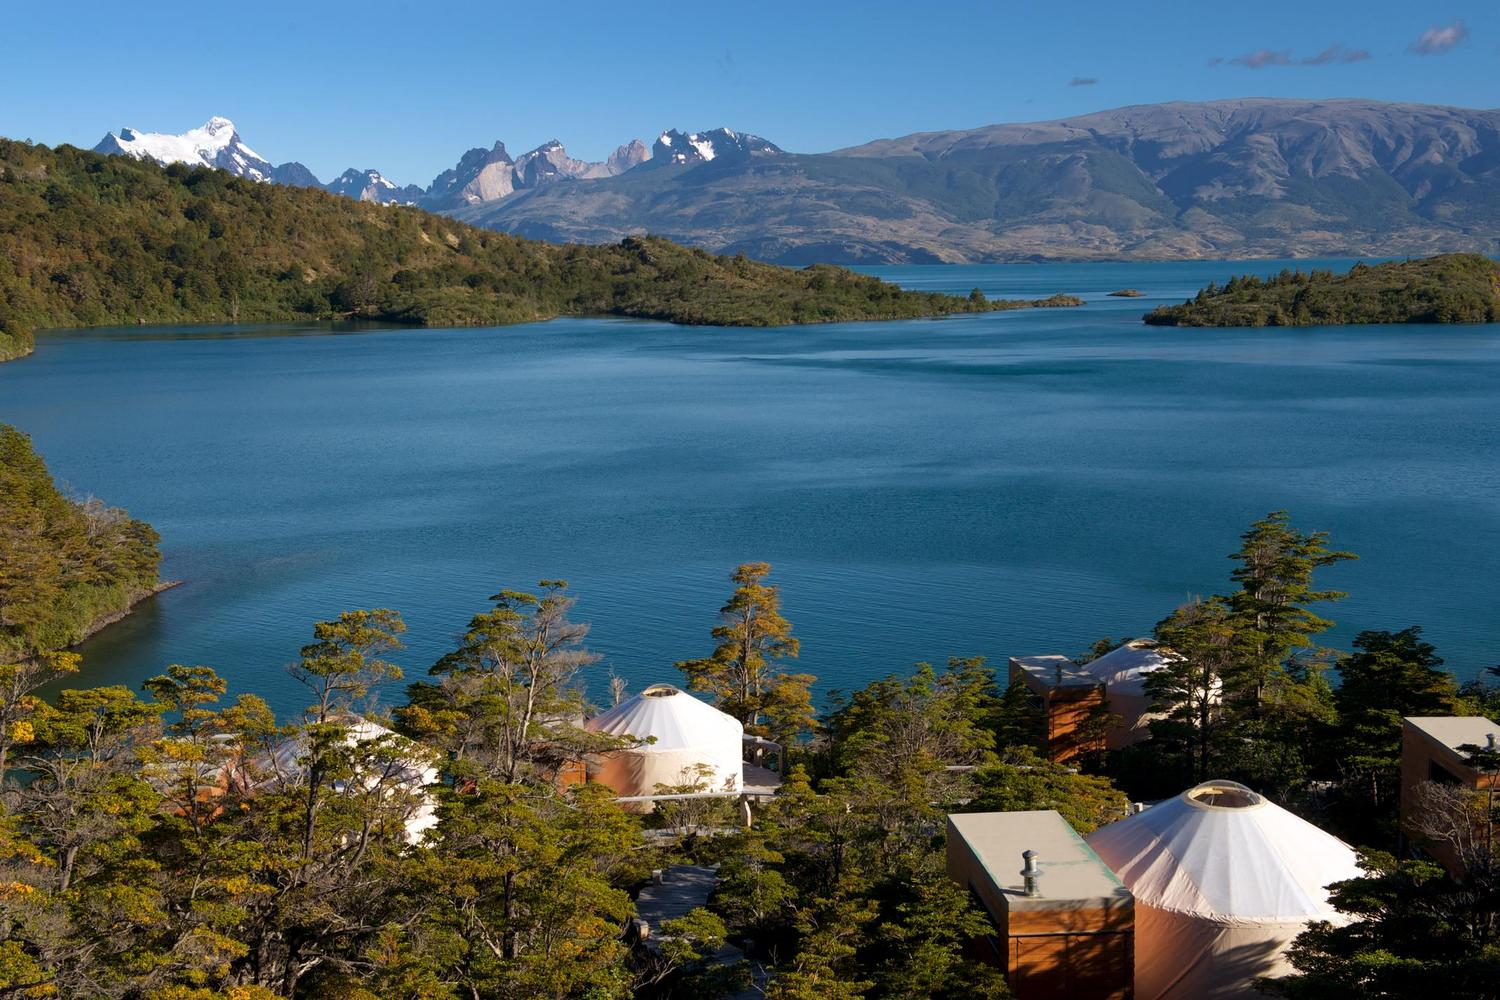 Looking out over Lago Toro from Patagonia Camp